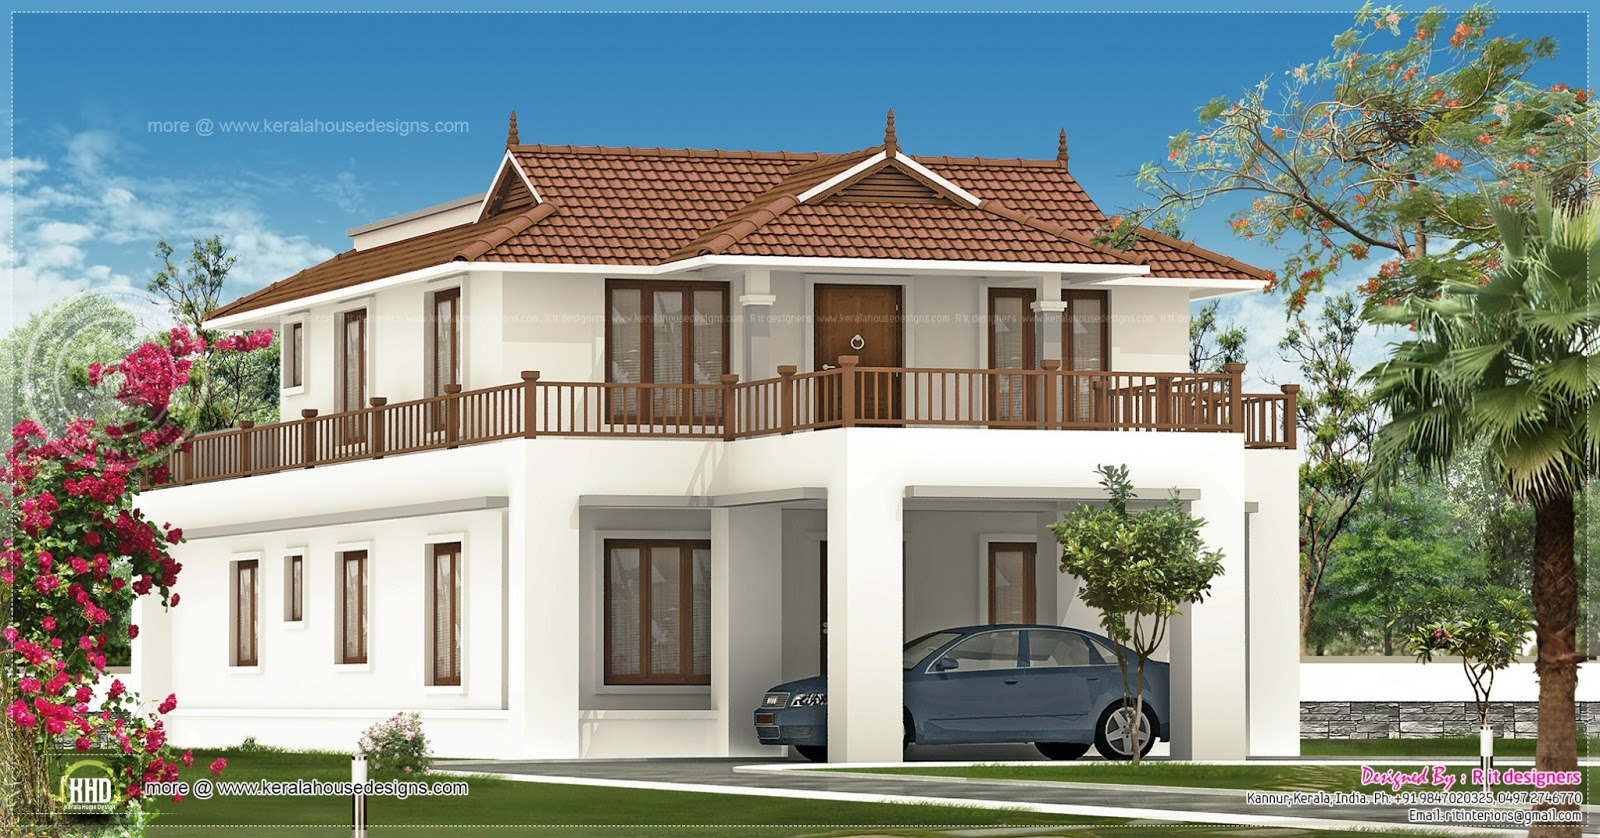 2820 square feet house exterior design home kerala plans for House design pictures exterior